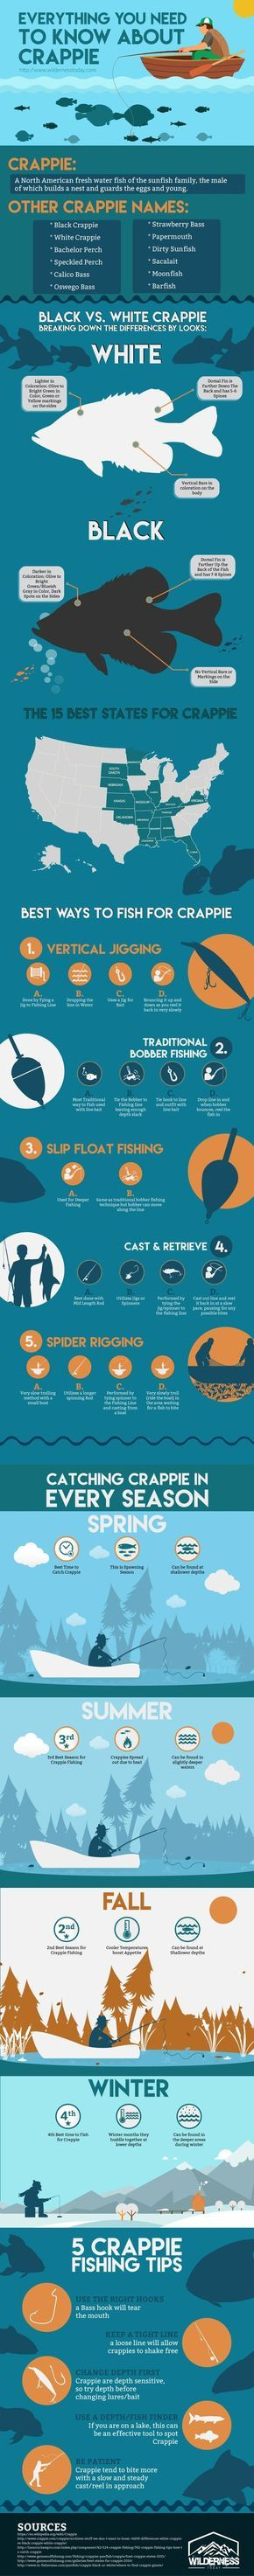 Crappie Fishing Tips - How to Catch White & Black Crappie Infographic